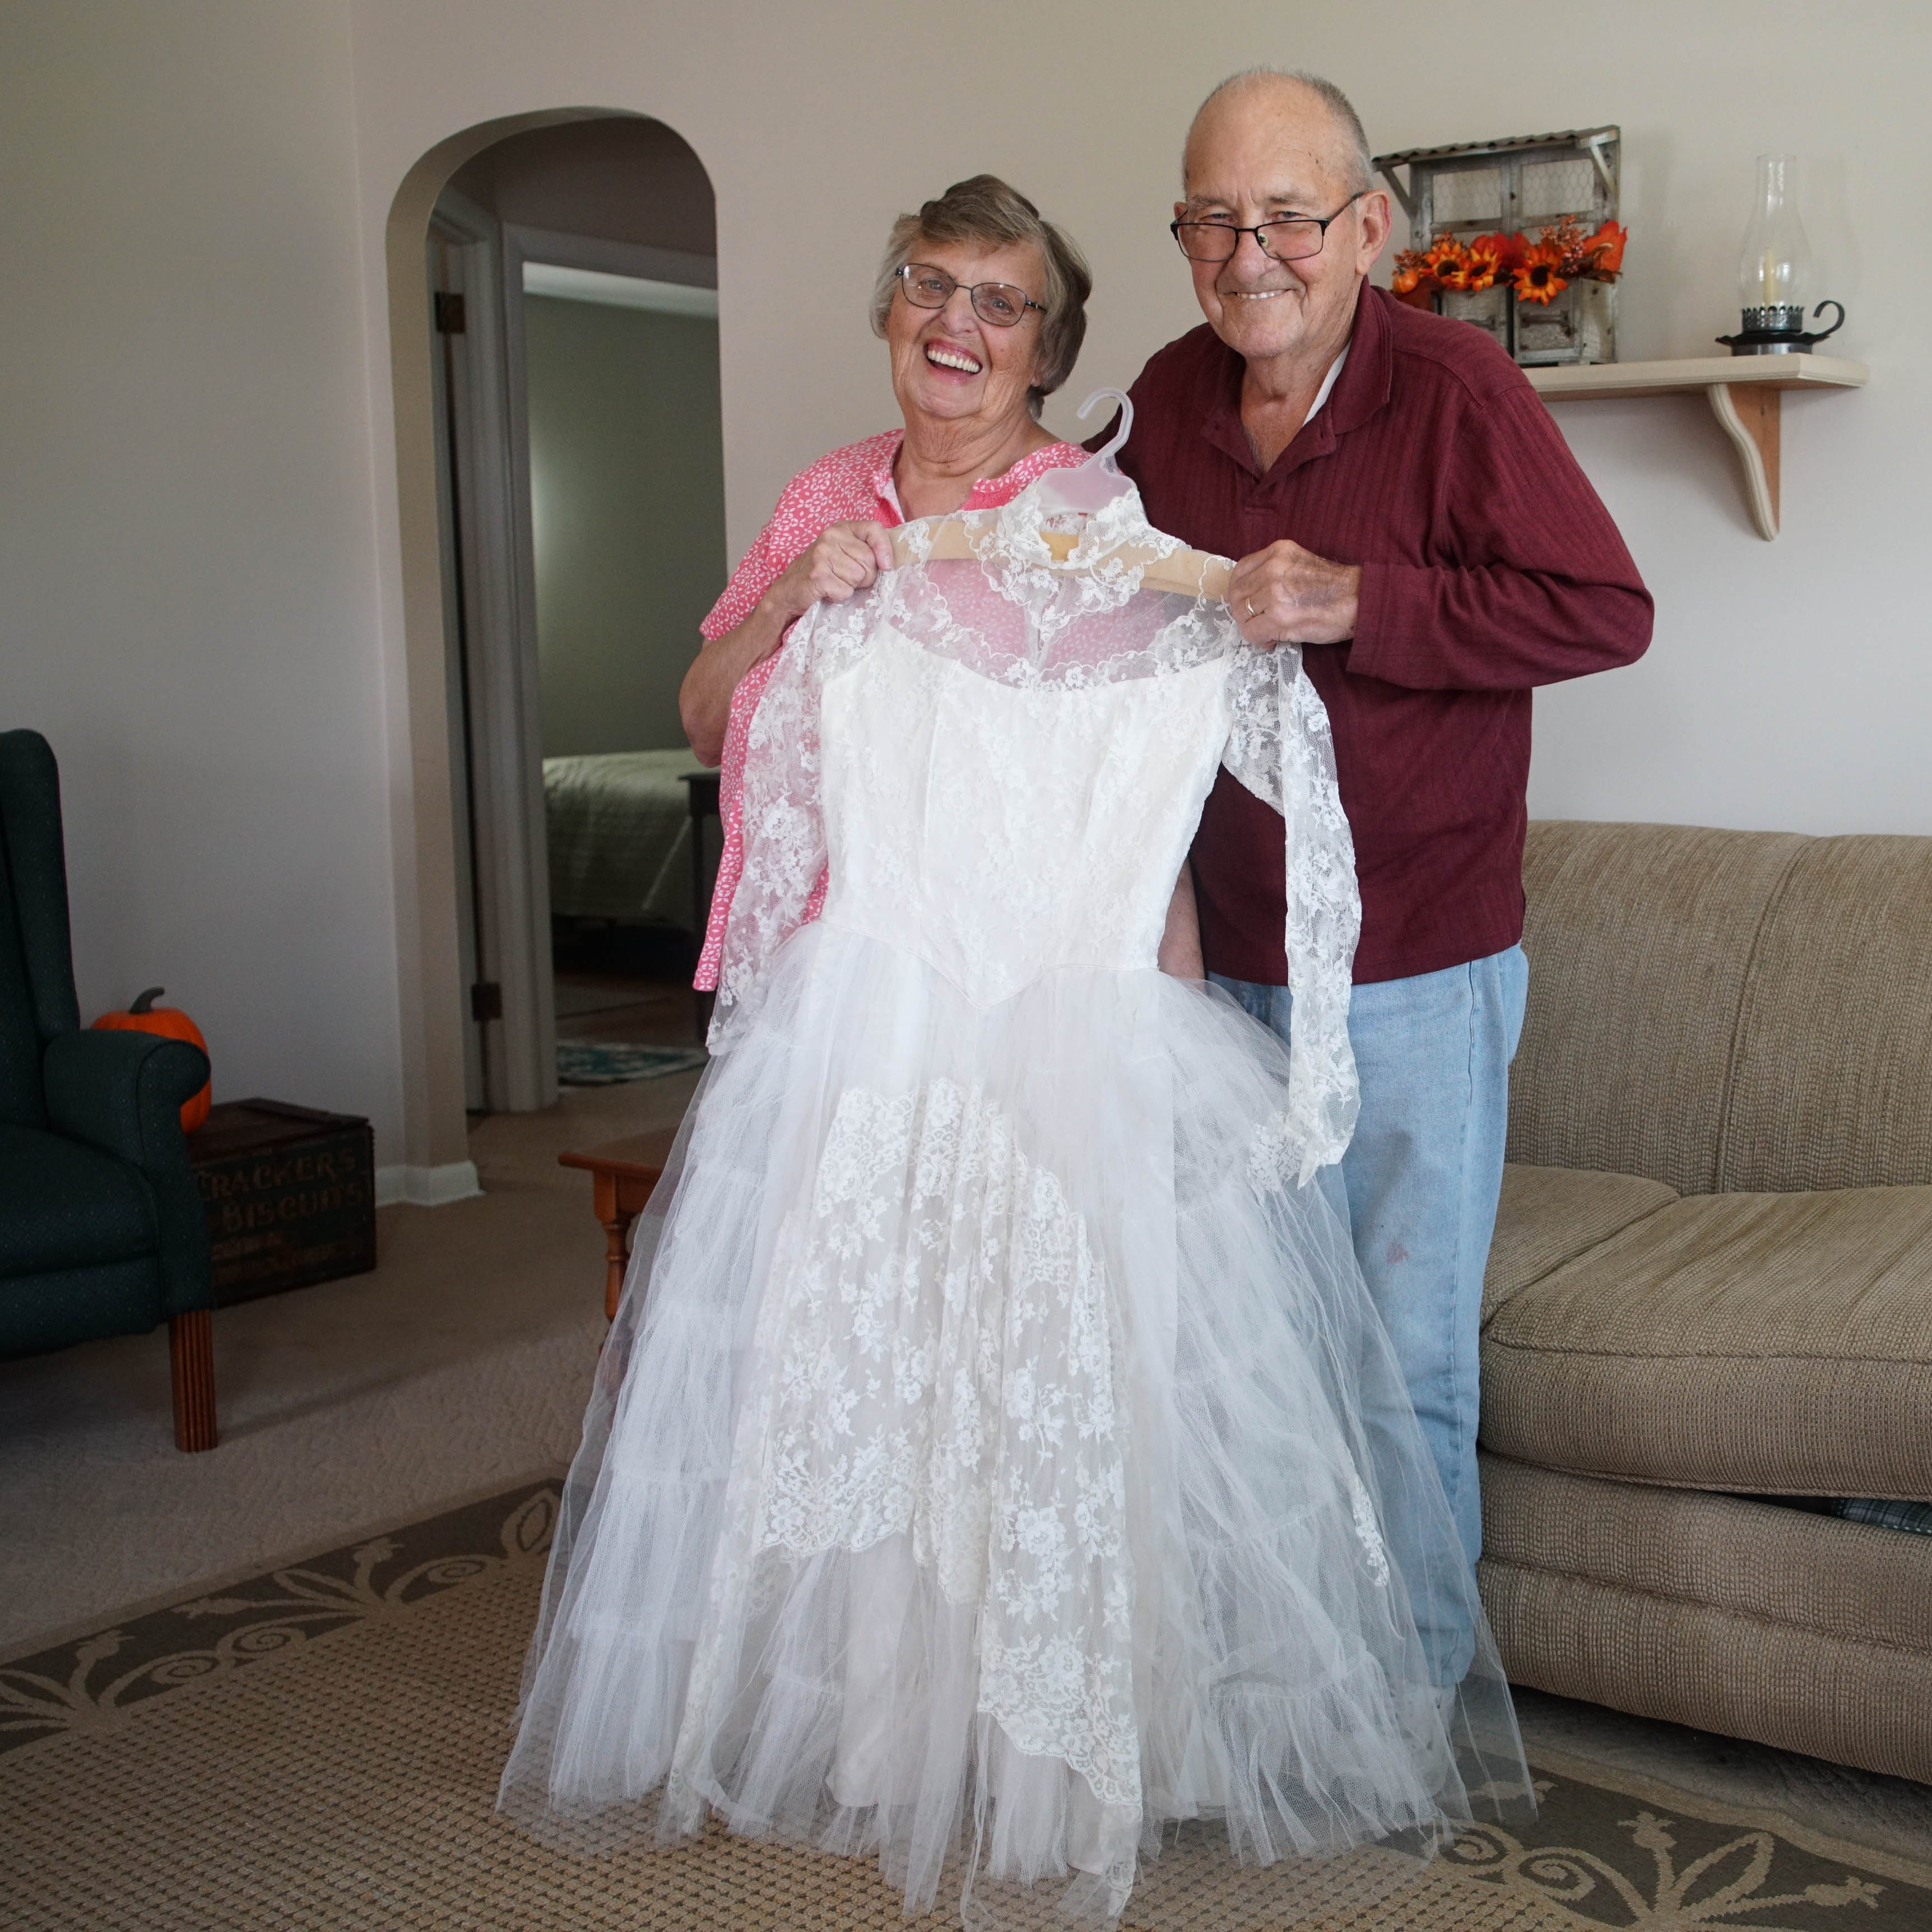 This Newark couple has been legally married for 60 years. Or so they thought.